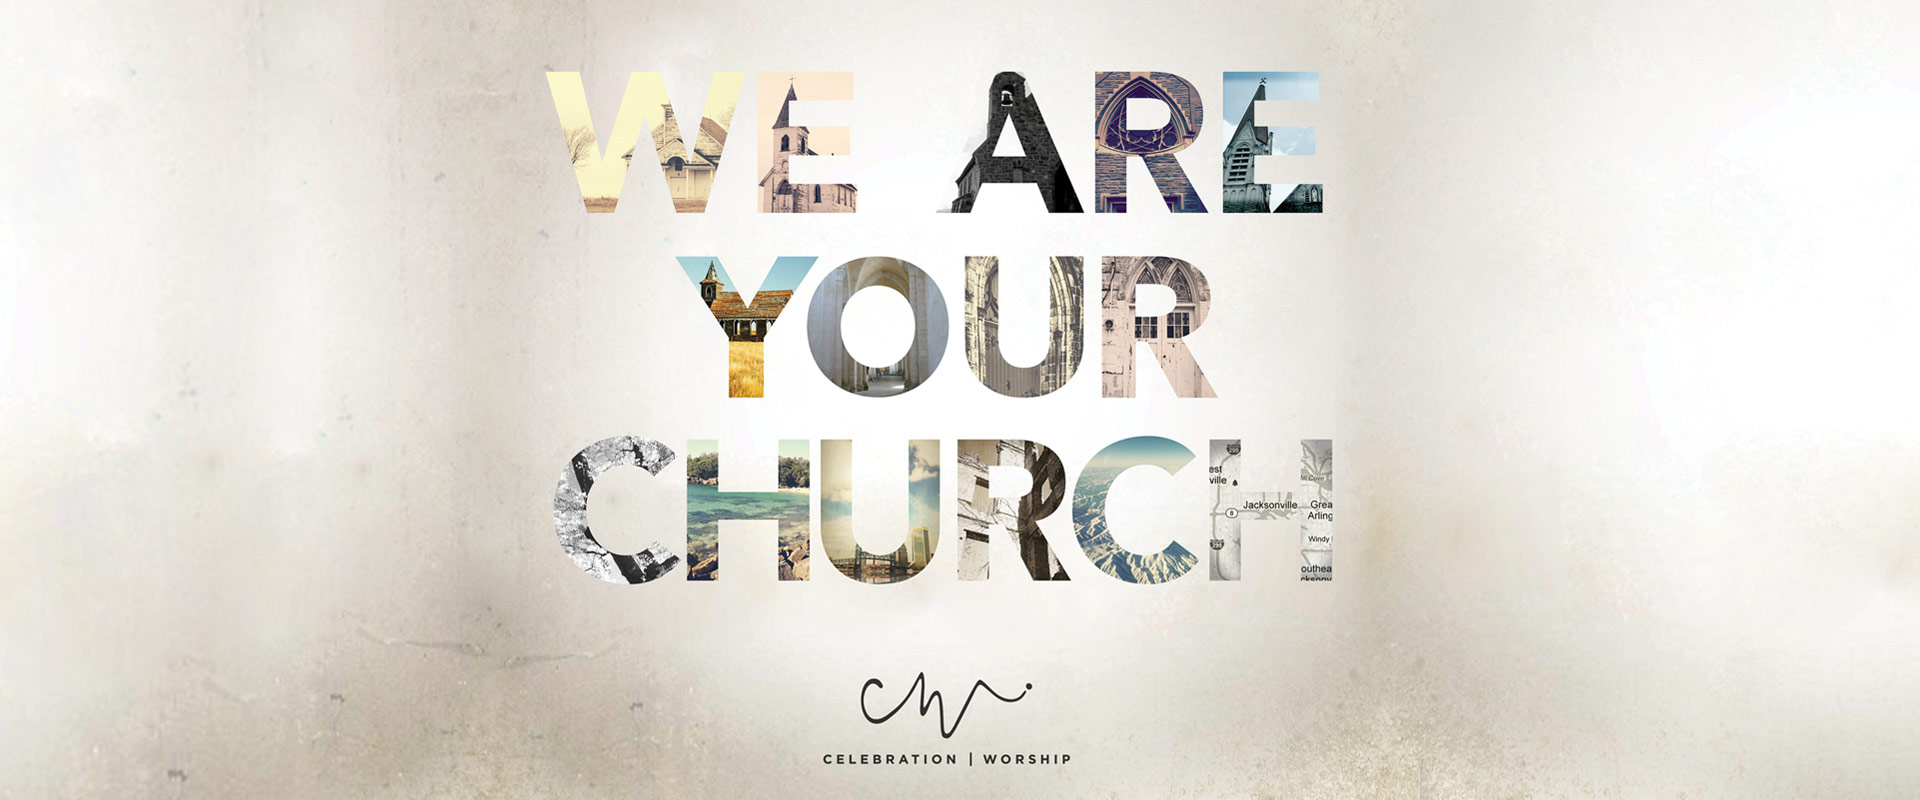 weareyourchurch